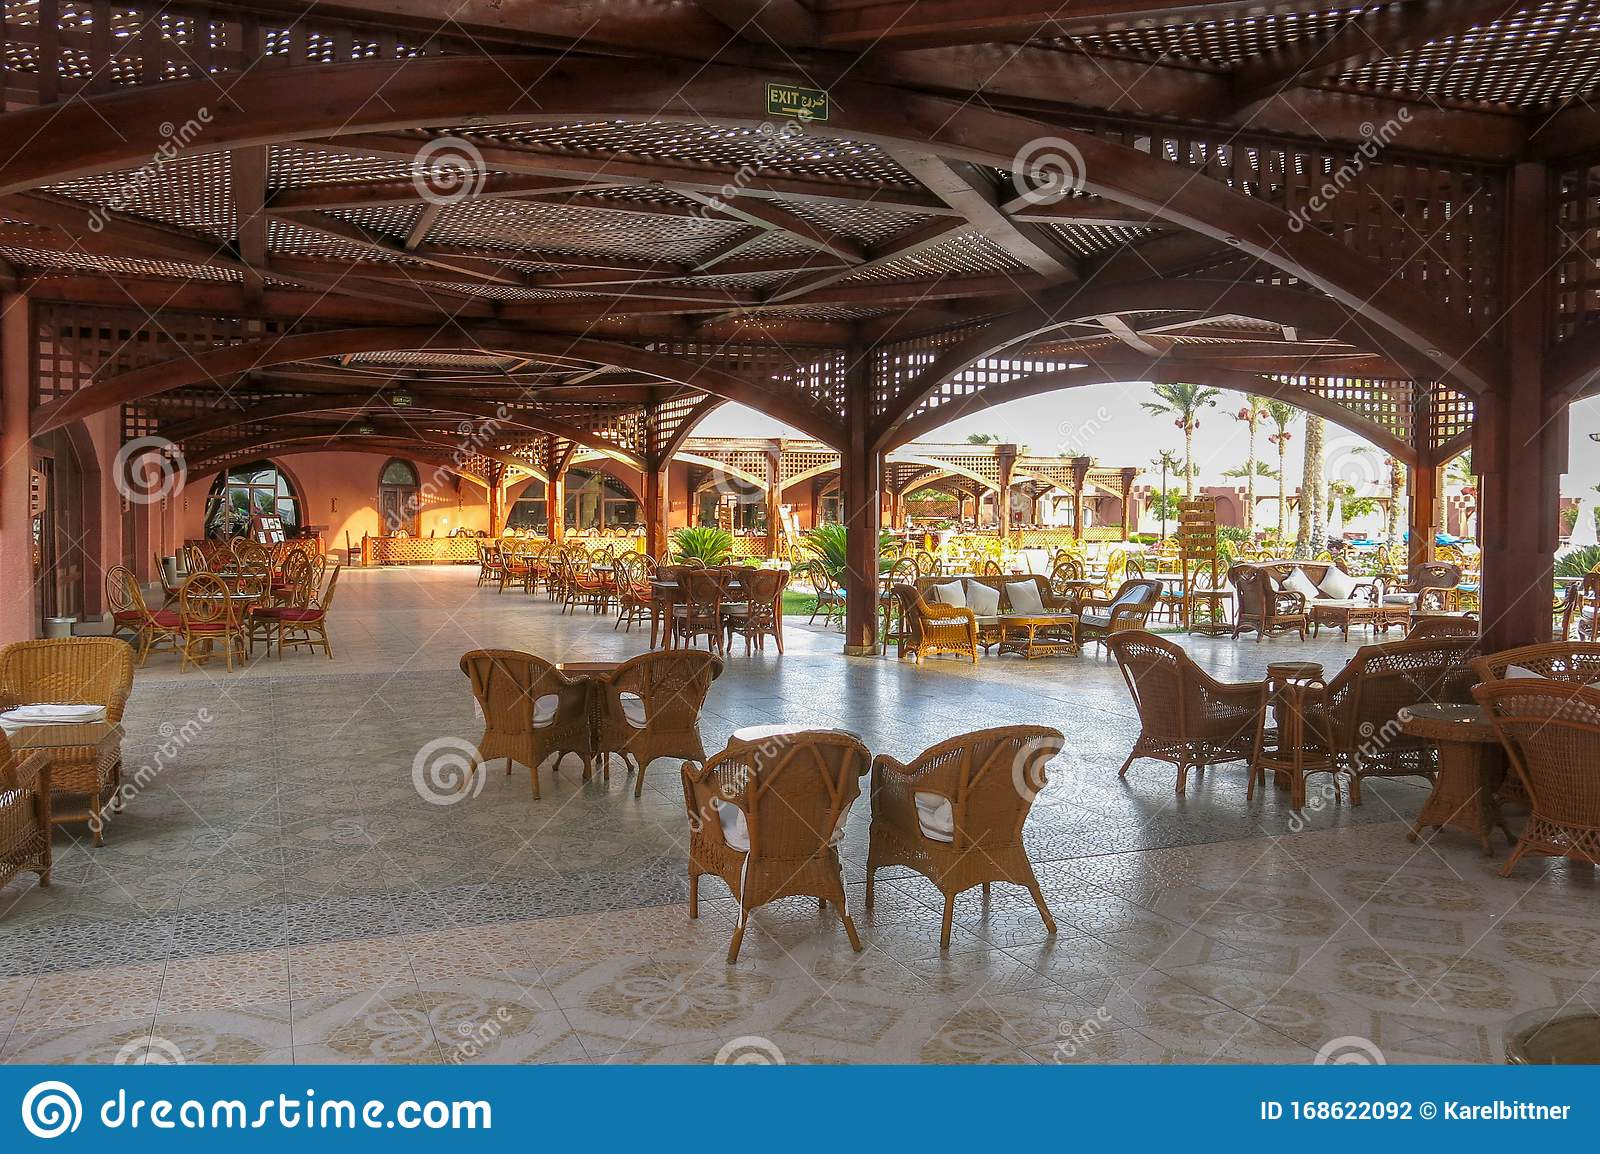 The Hotel Restaurant Is Made Of Wooden Beams And Planks Covered Outdoor Terrace With Seating And Decorative Wooden Fencing Stock Photo Image Of Leisure House 168622092